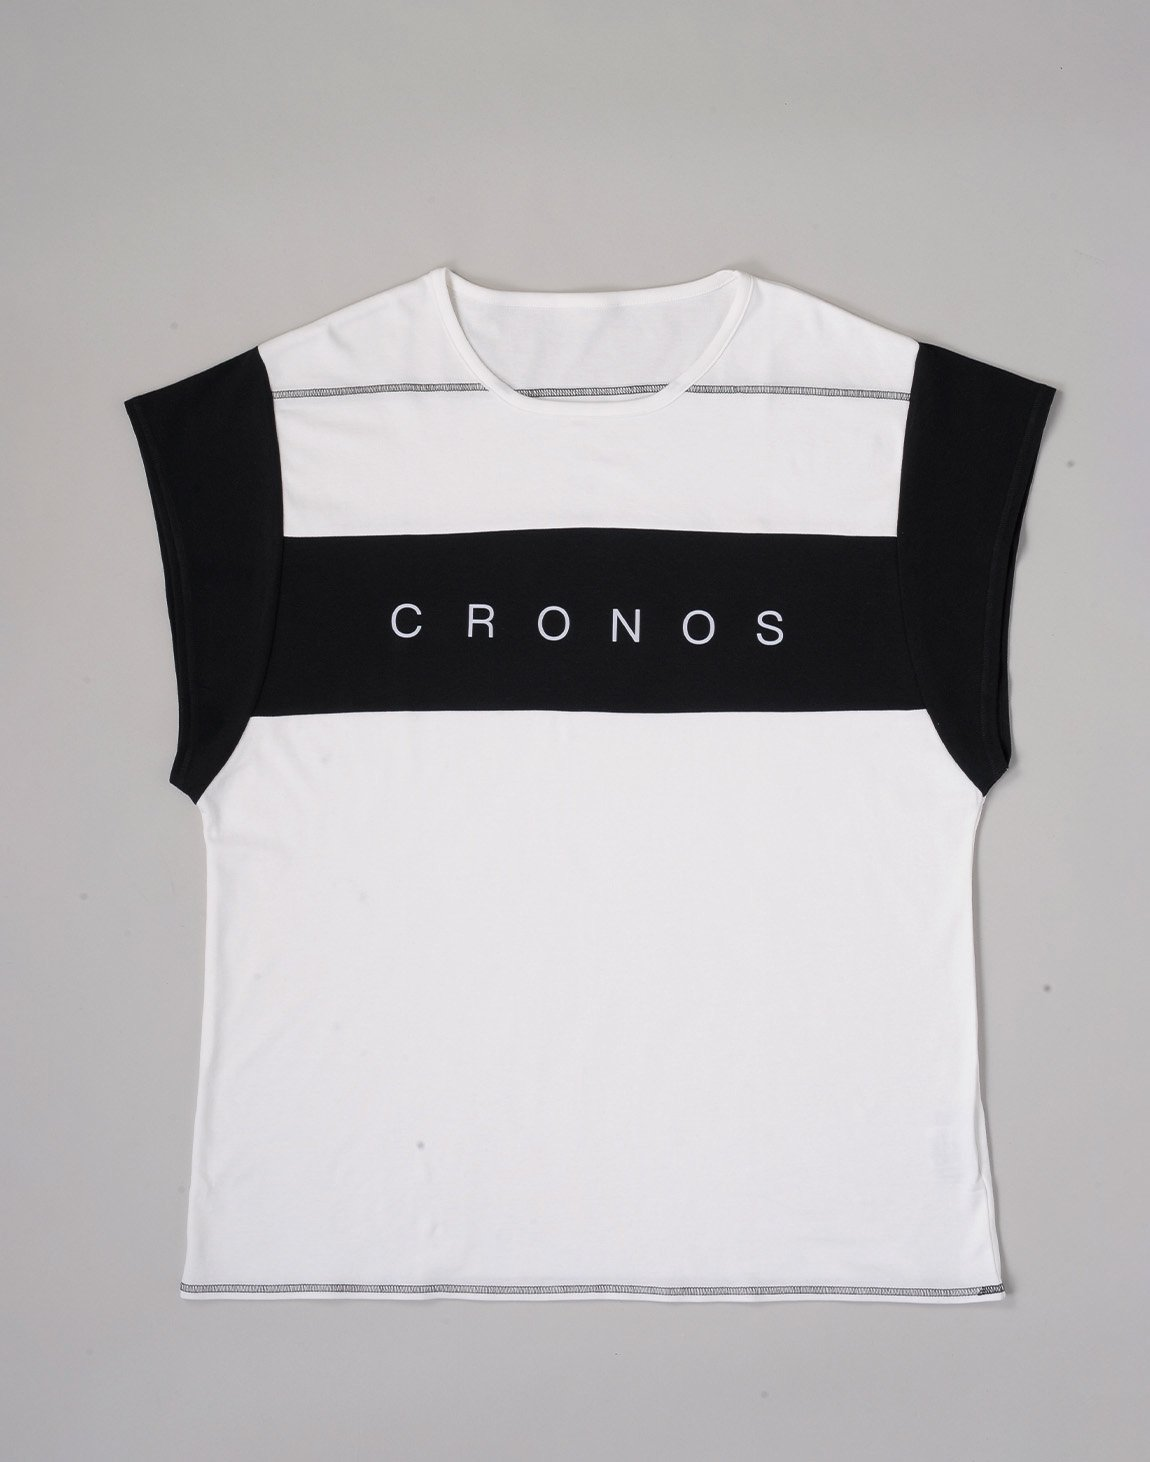 <img class='new_mark_img1' src='https://img.shop-pro.jp/img/new/icons1.gif' style='border:none;display:inline;margin:0px;padding:0px;width:auto;' />CRONOS BANNER LOGO TOPS【WHITE】